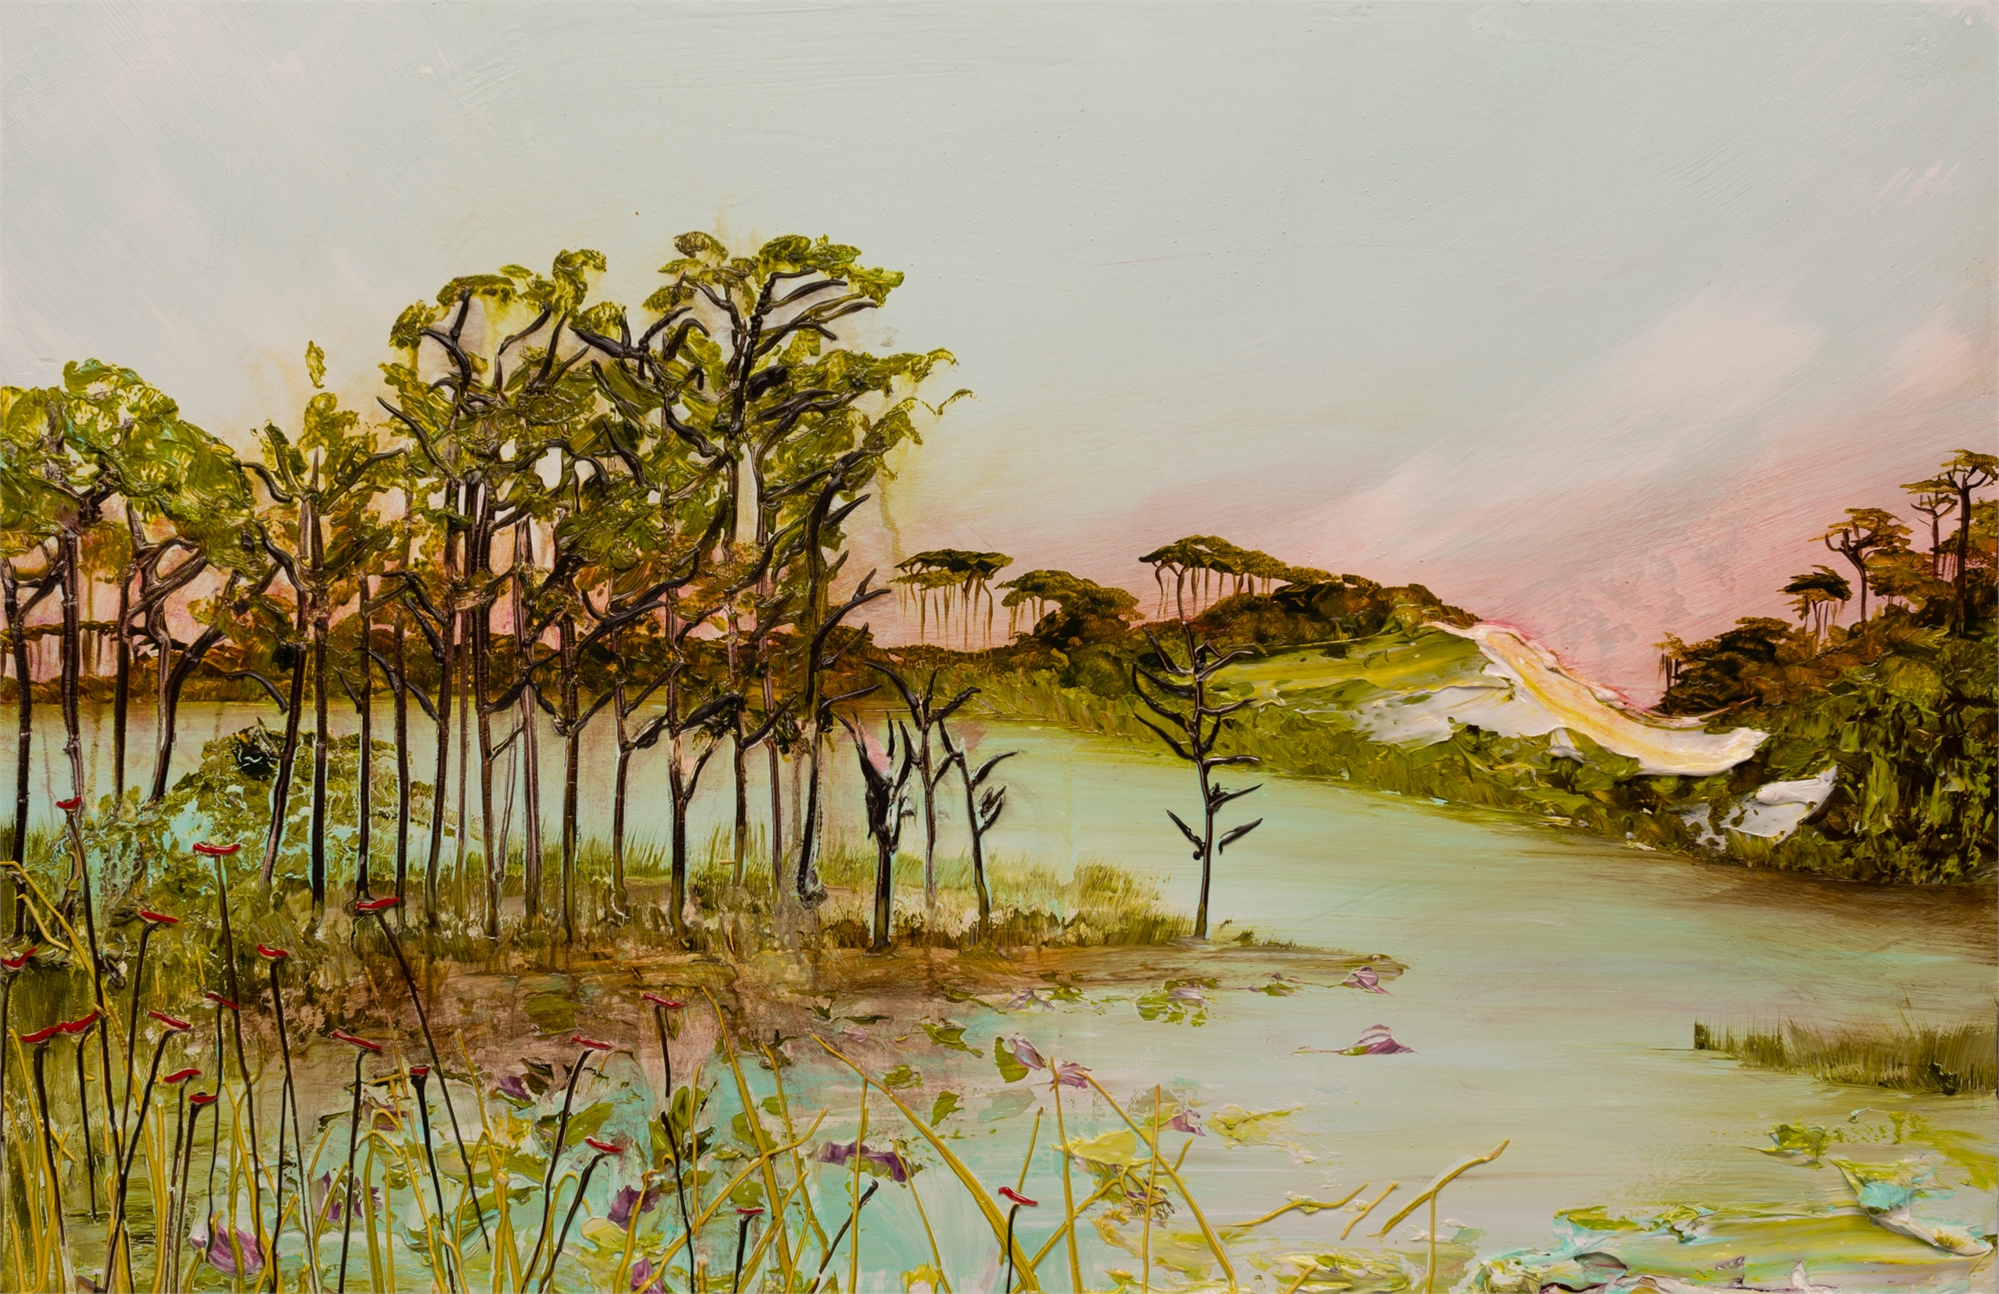 LAKESCAPE LS-36x24-2019-338 by JUSTIN GAFFREY